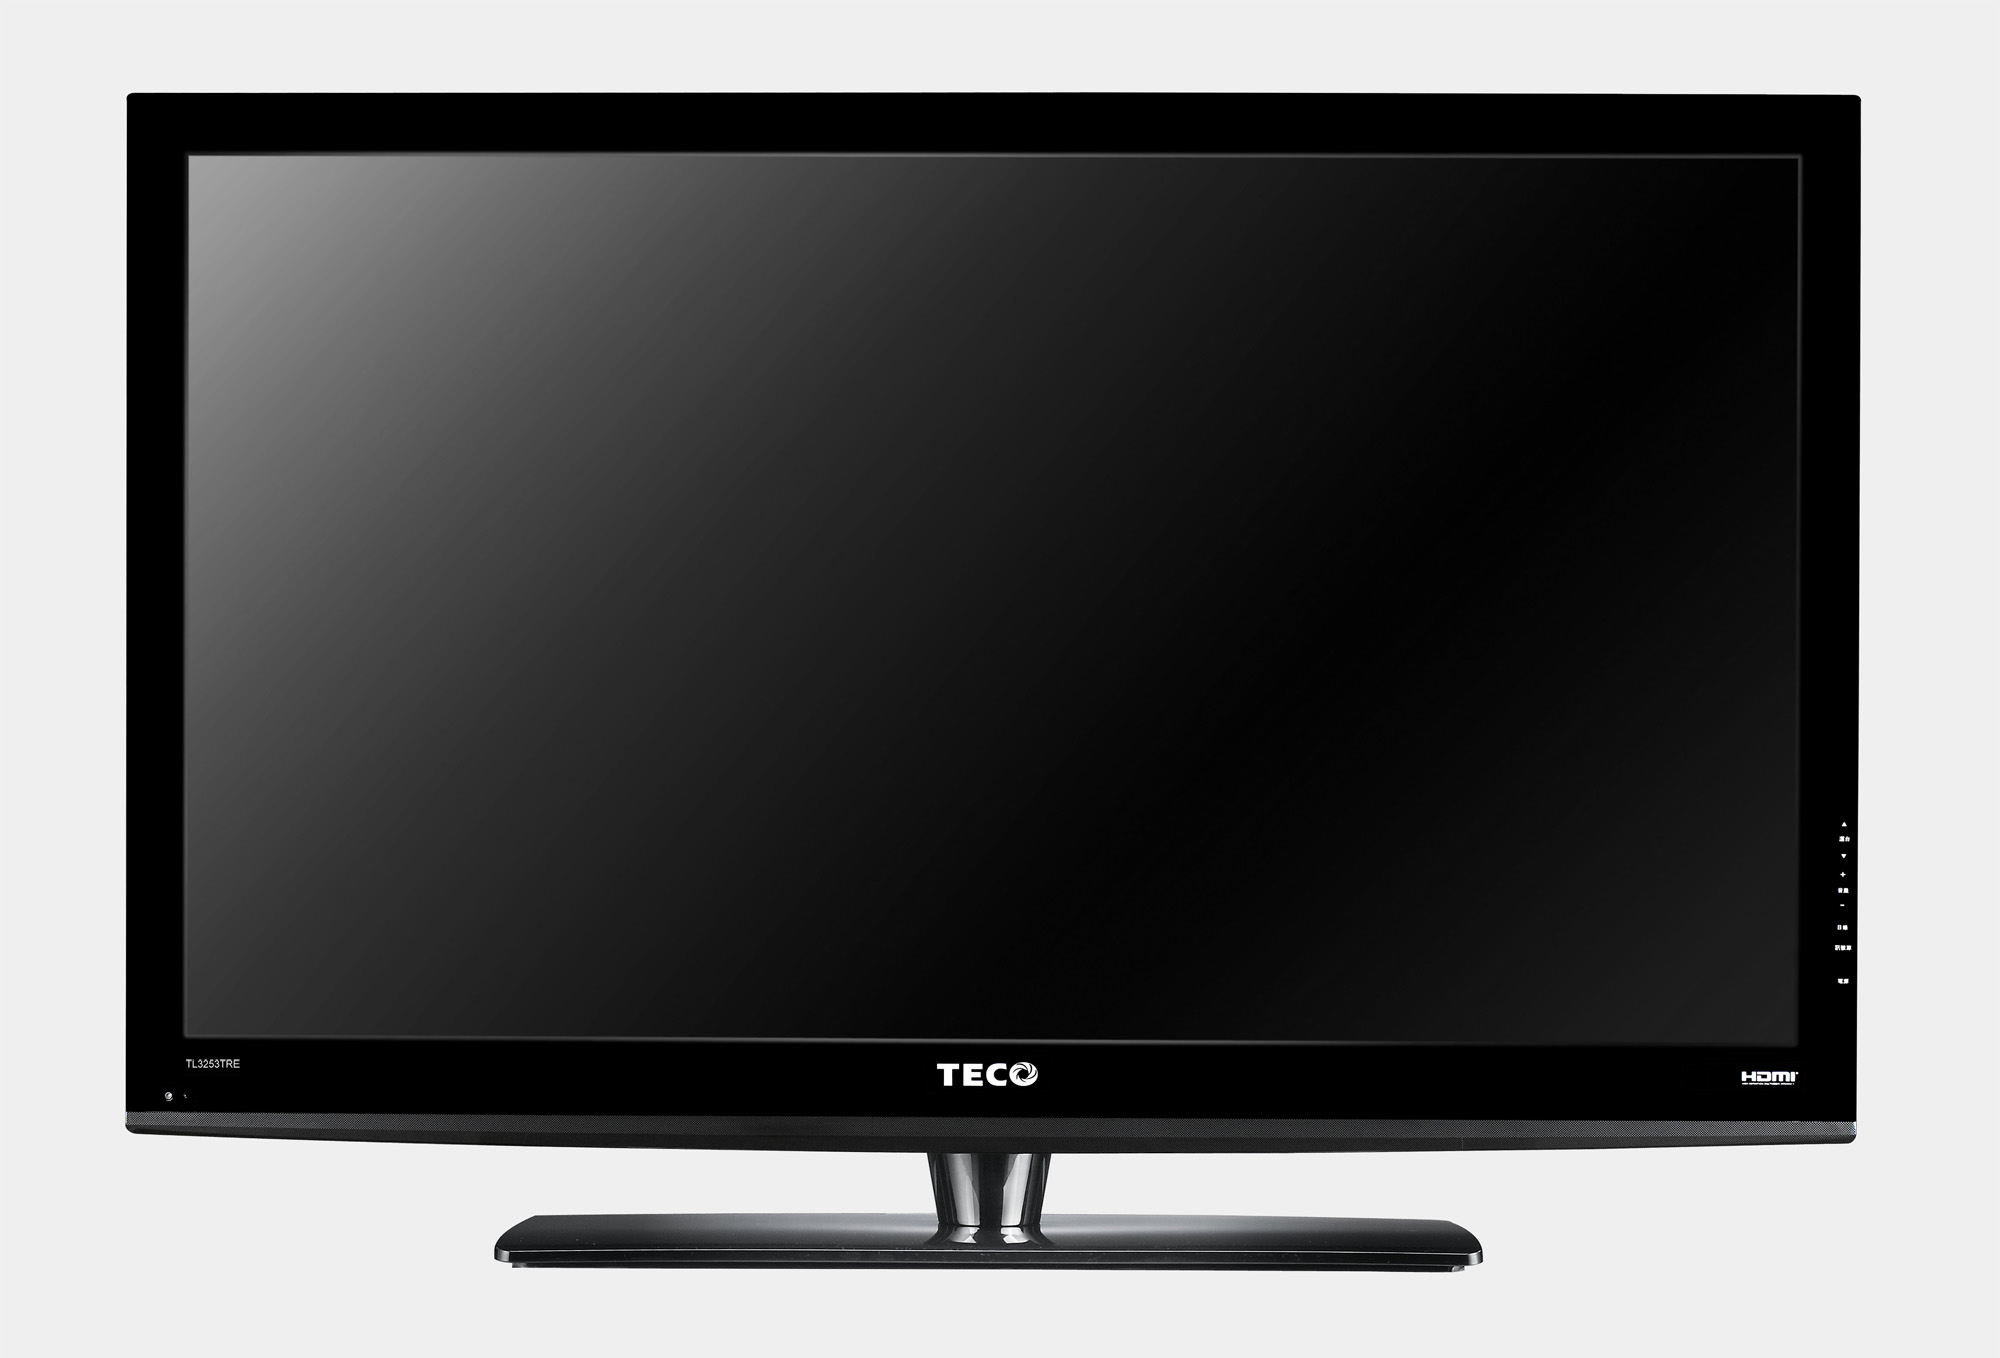 LED Monitor / TECO ELECTRIC & MACHINERY CO., LTD.